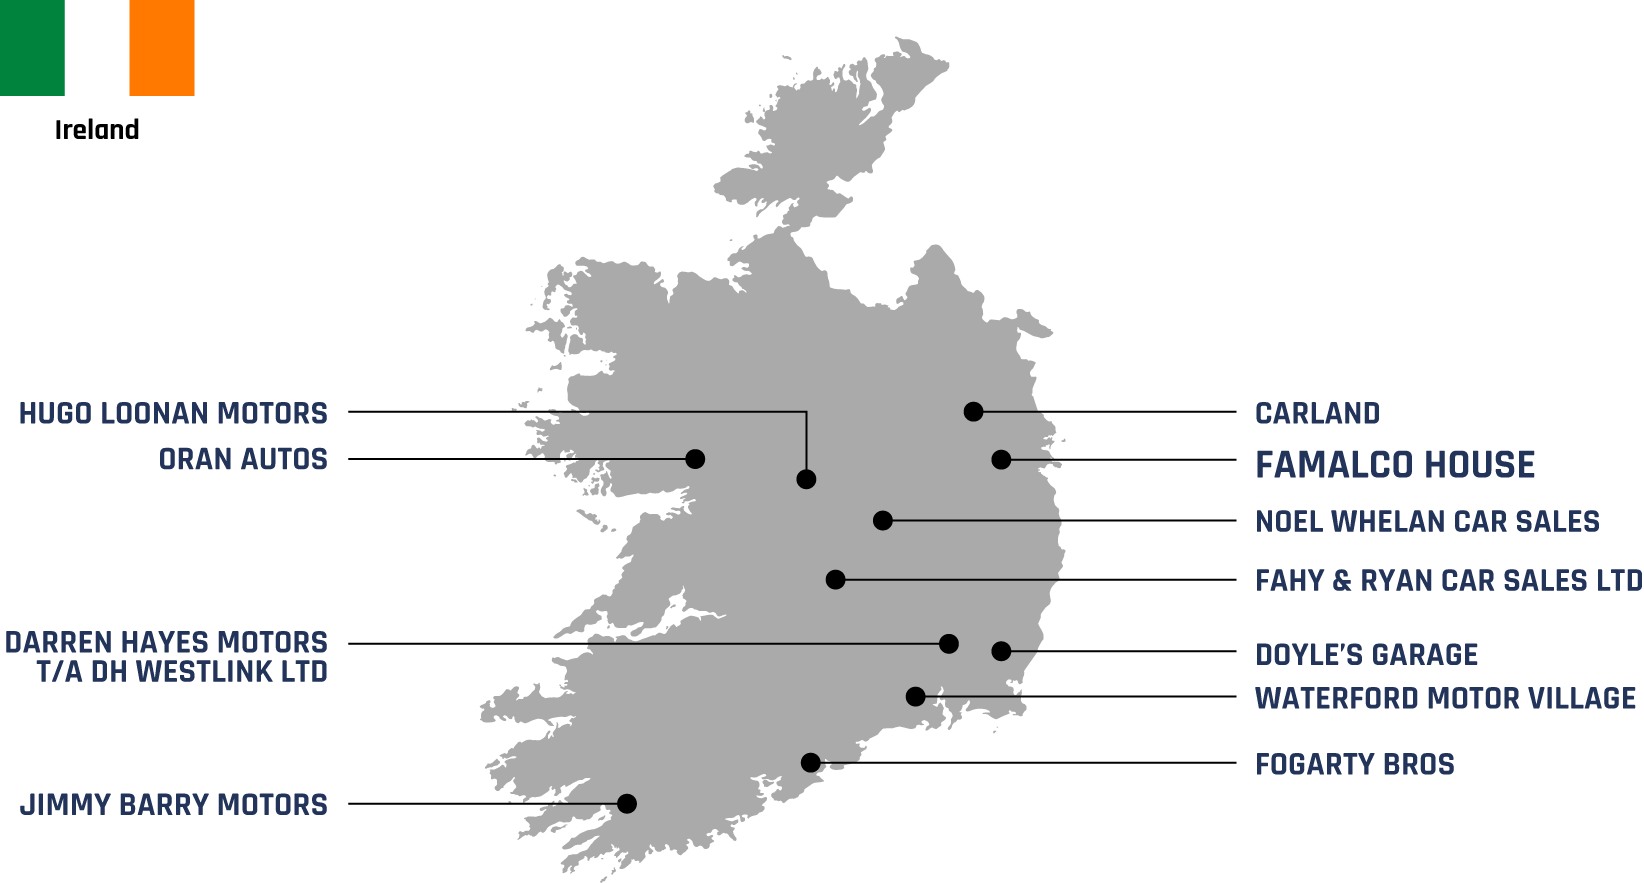 ireland new map for website